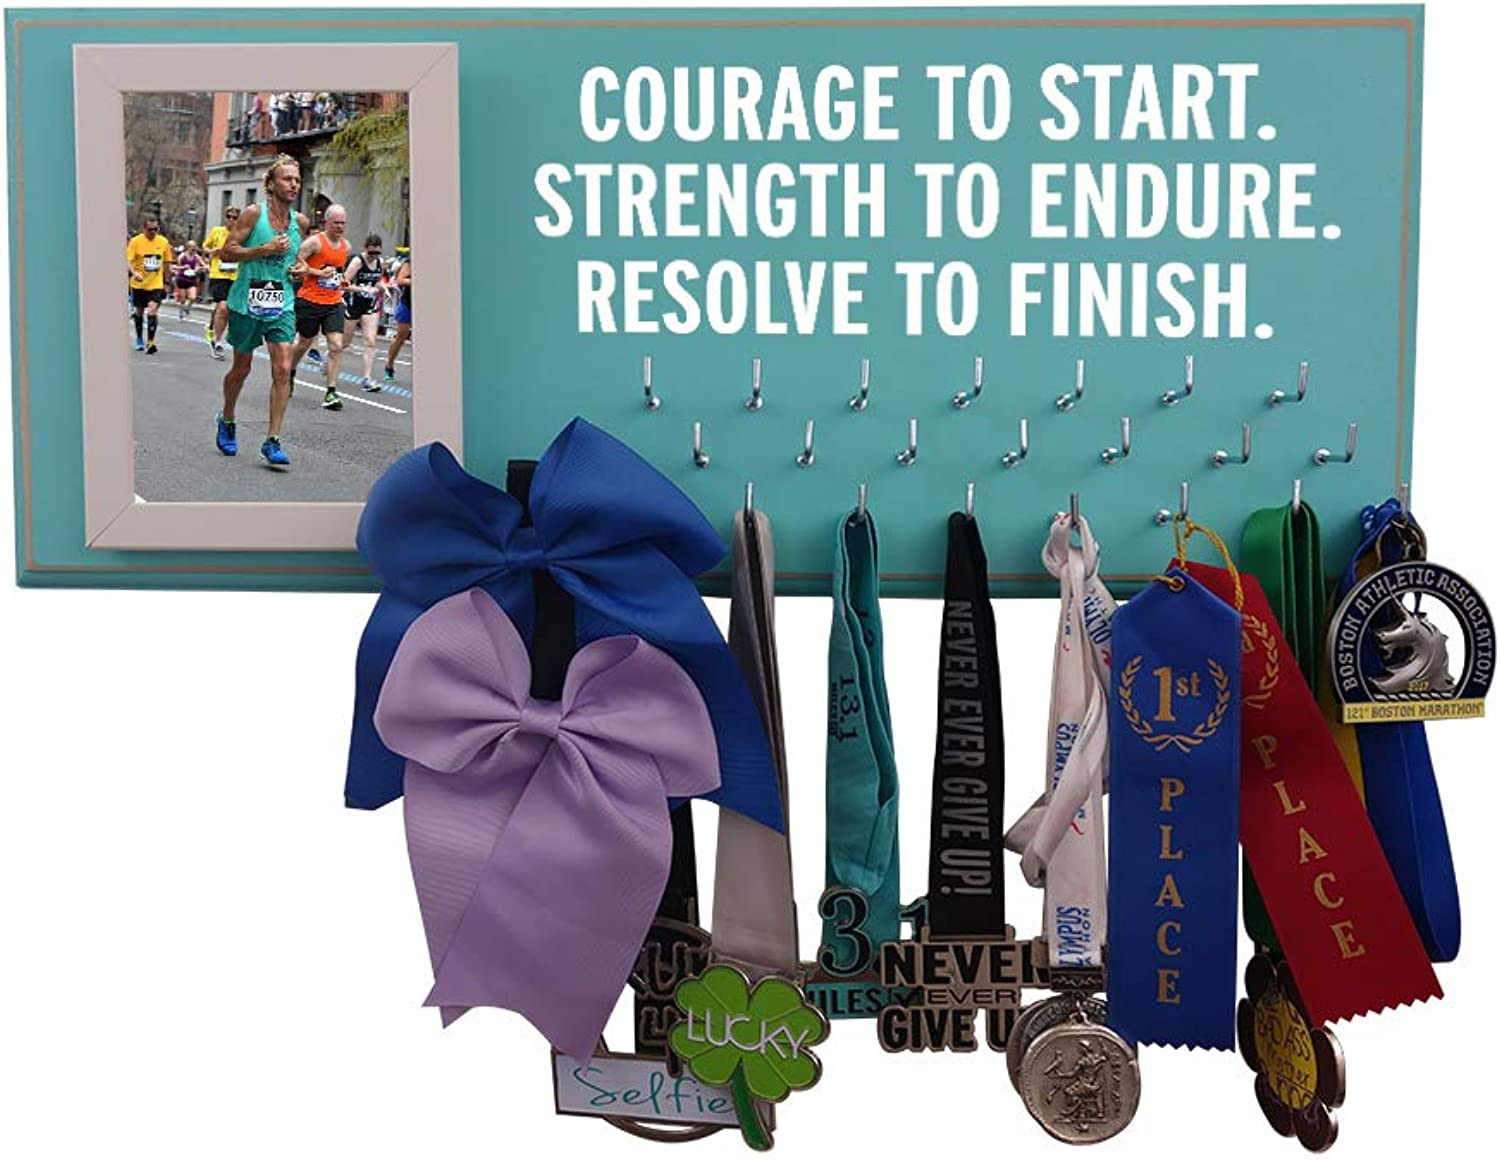 Running On The WallGifts for RunnersMarathon Medal DisplayMedal Rack for Running Awards Hanger  Wall Mounted HolderCourage to Start.Strenght to Endure.Resolve to Finish